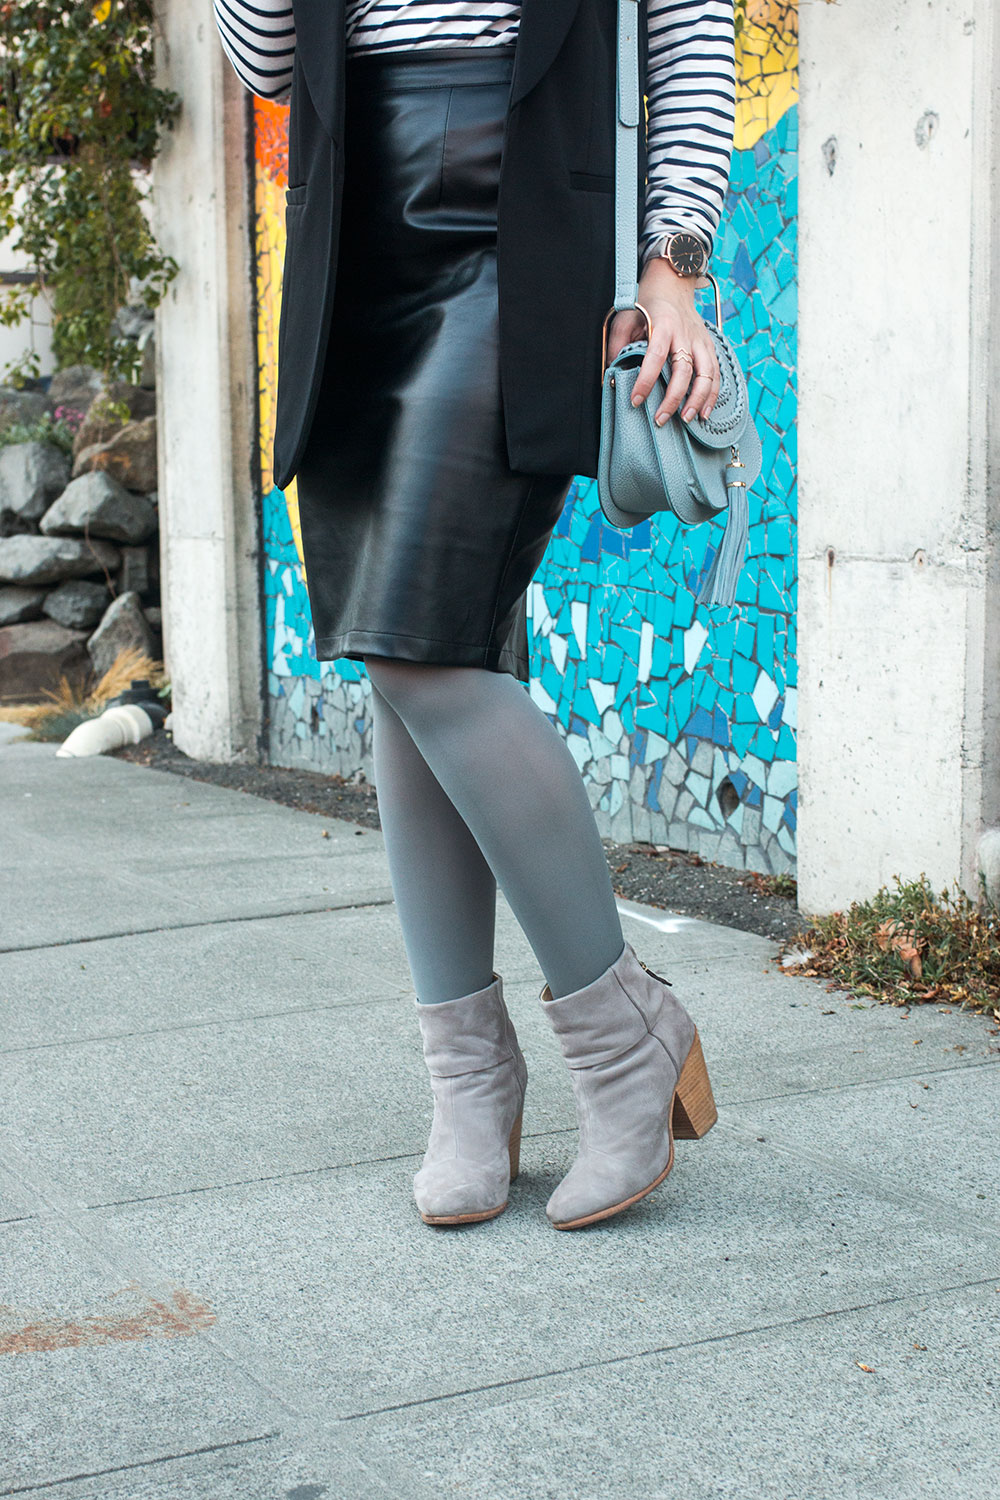 Grey Tights Outfit with Ankle Boots and Leather Skirt // Hello Rigby Seattle Fashion Blog